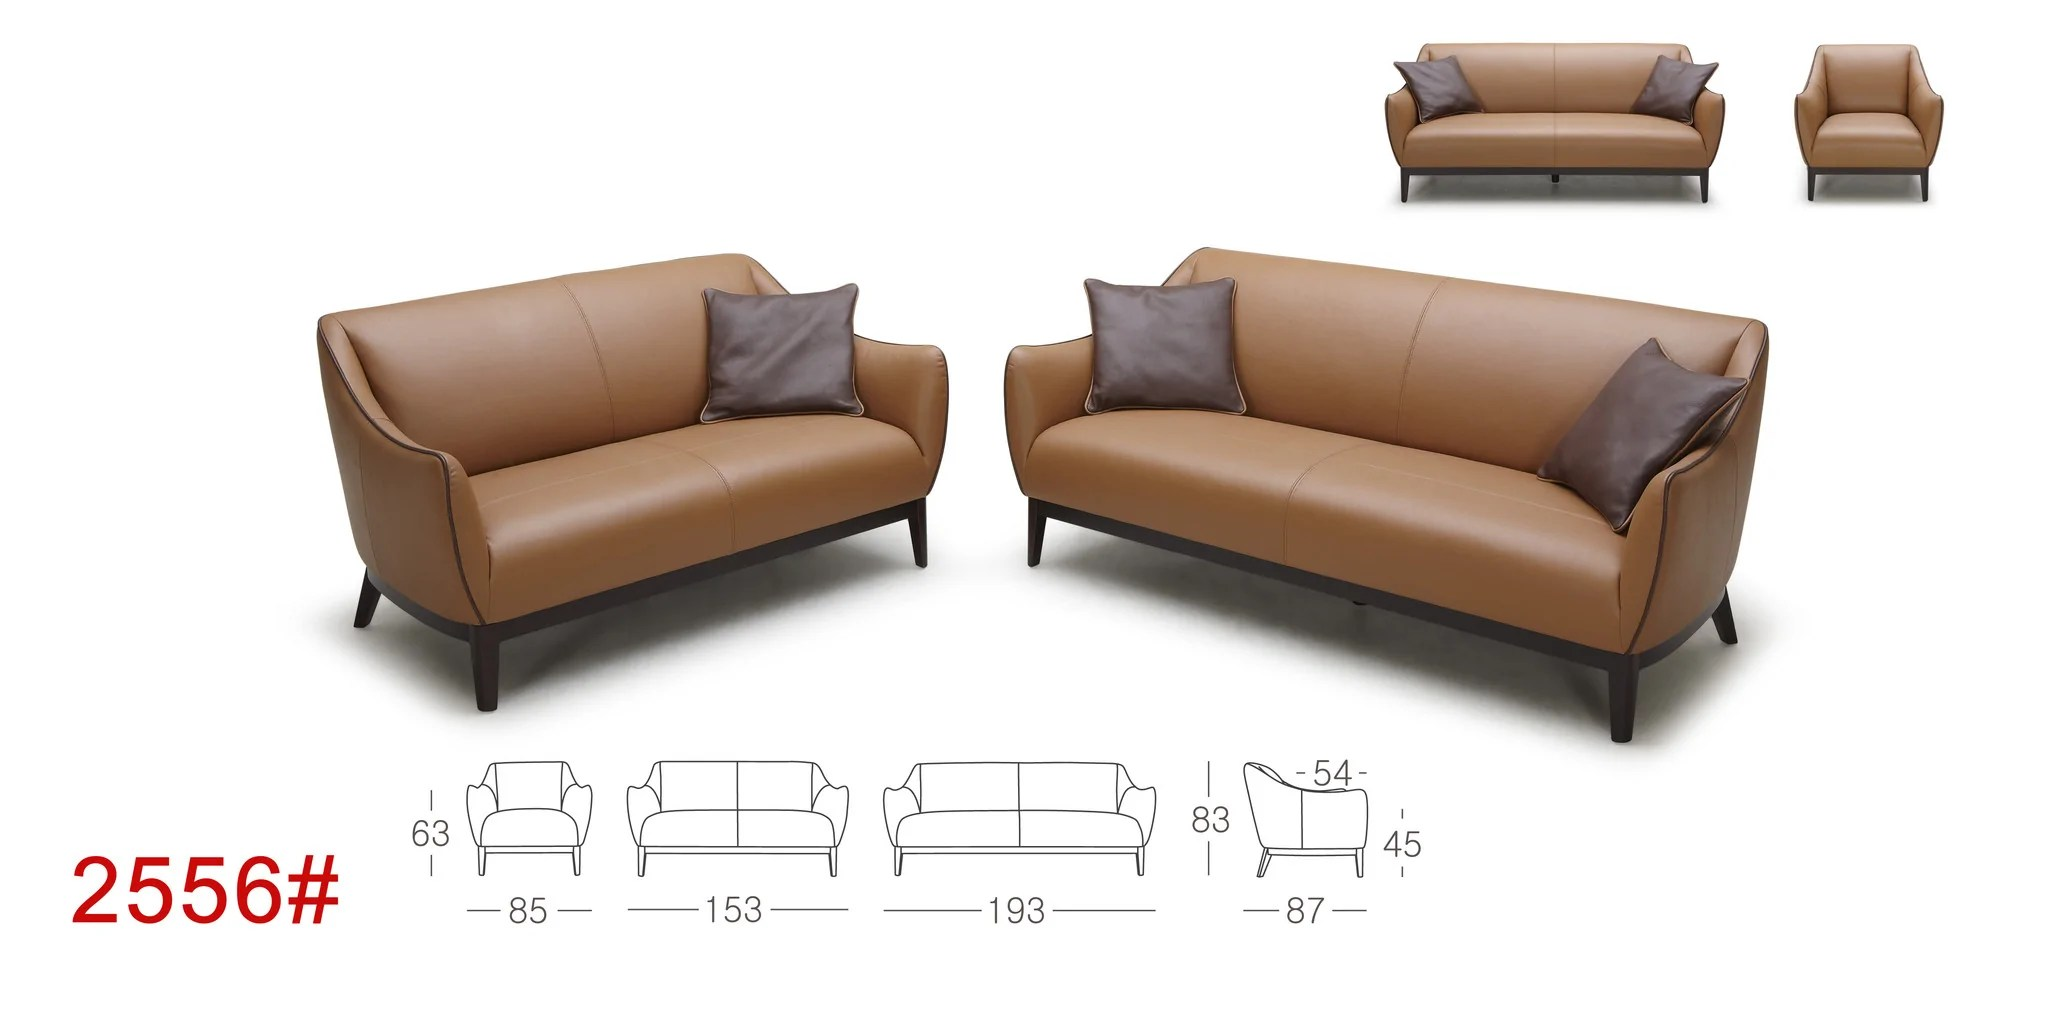 Leather Sofa Brands Singapore